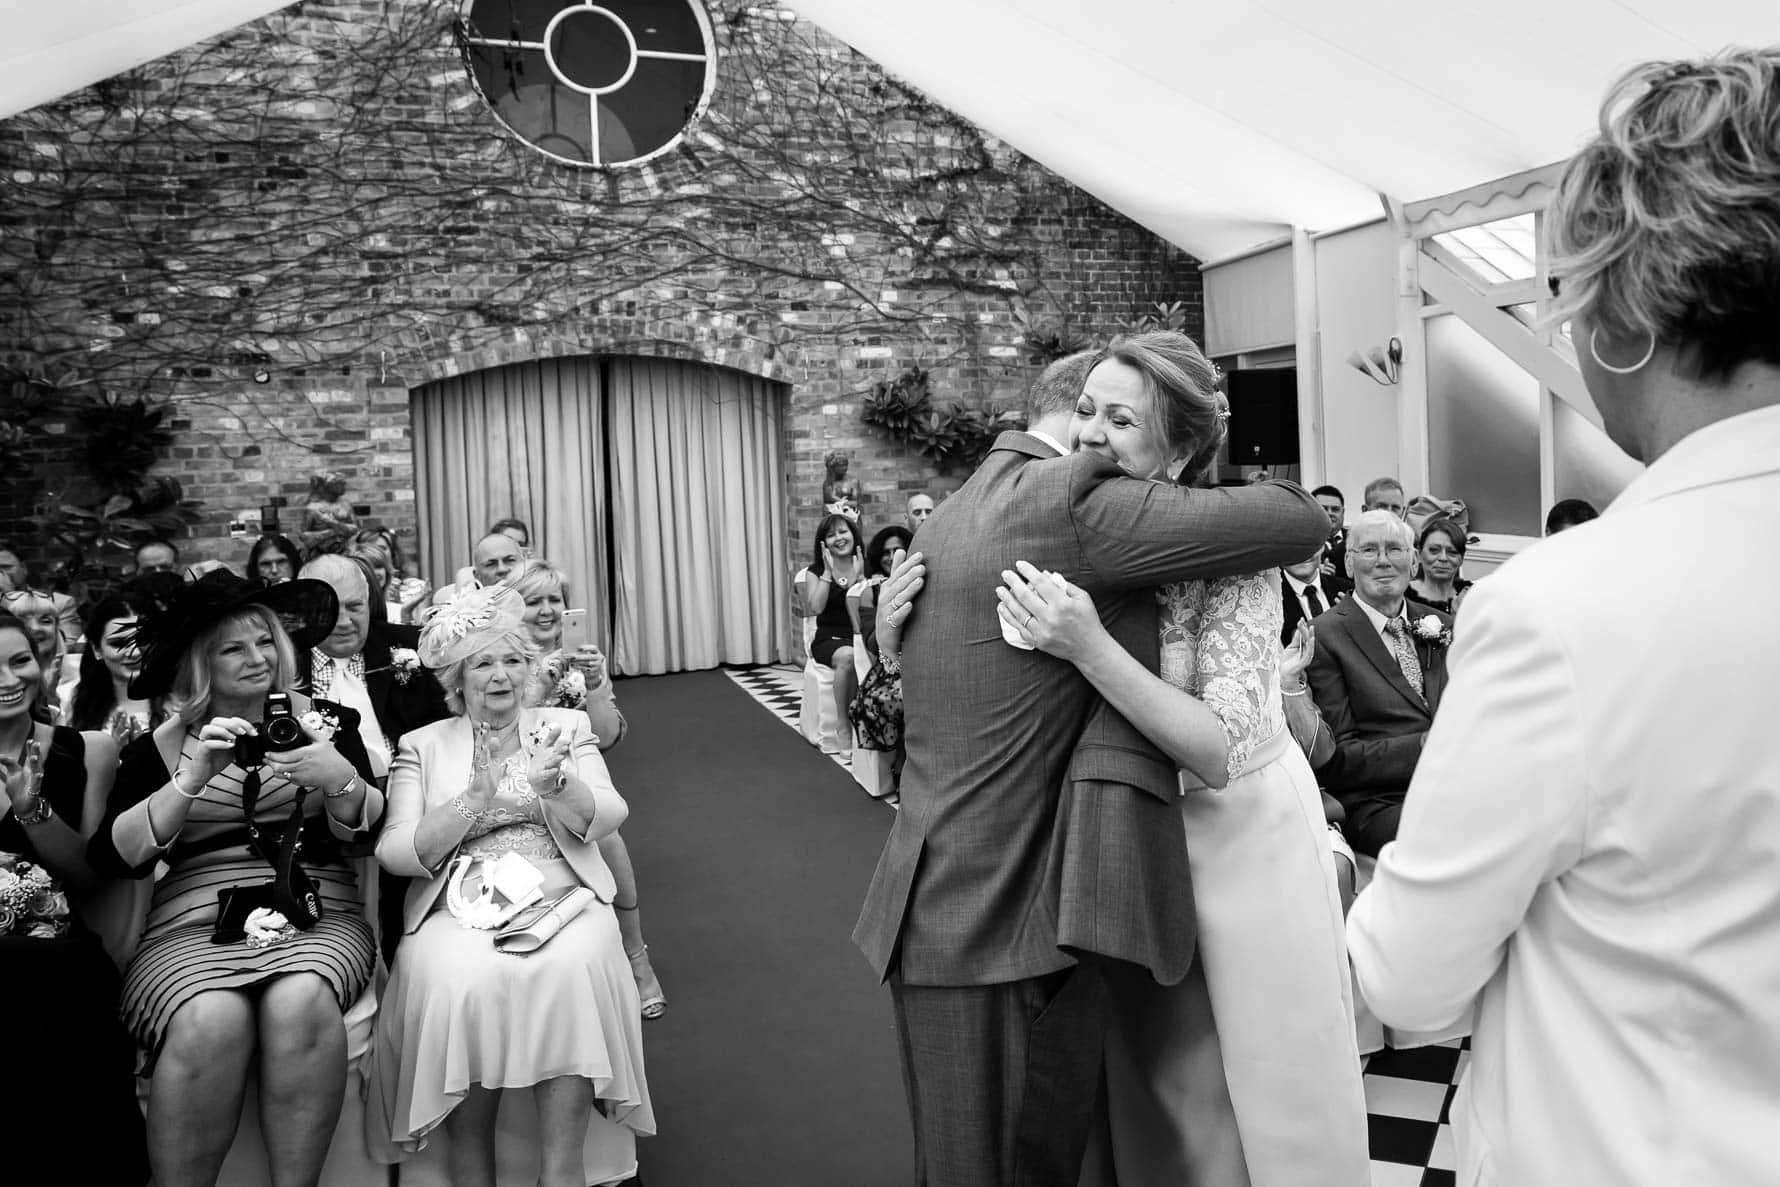 First hug as a married couple at Hanbury Manor wedding by Hertfordshire wedding photographer Graham Warrellow